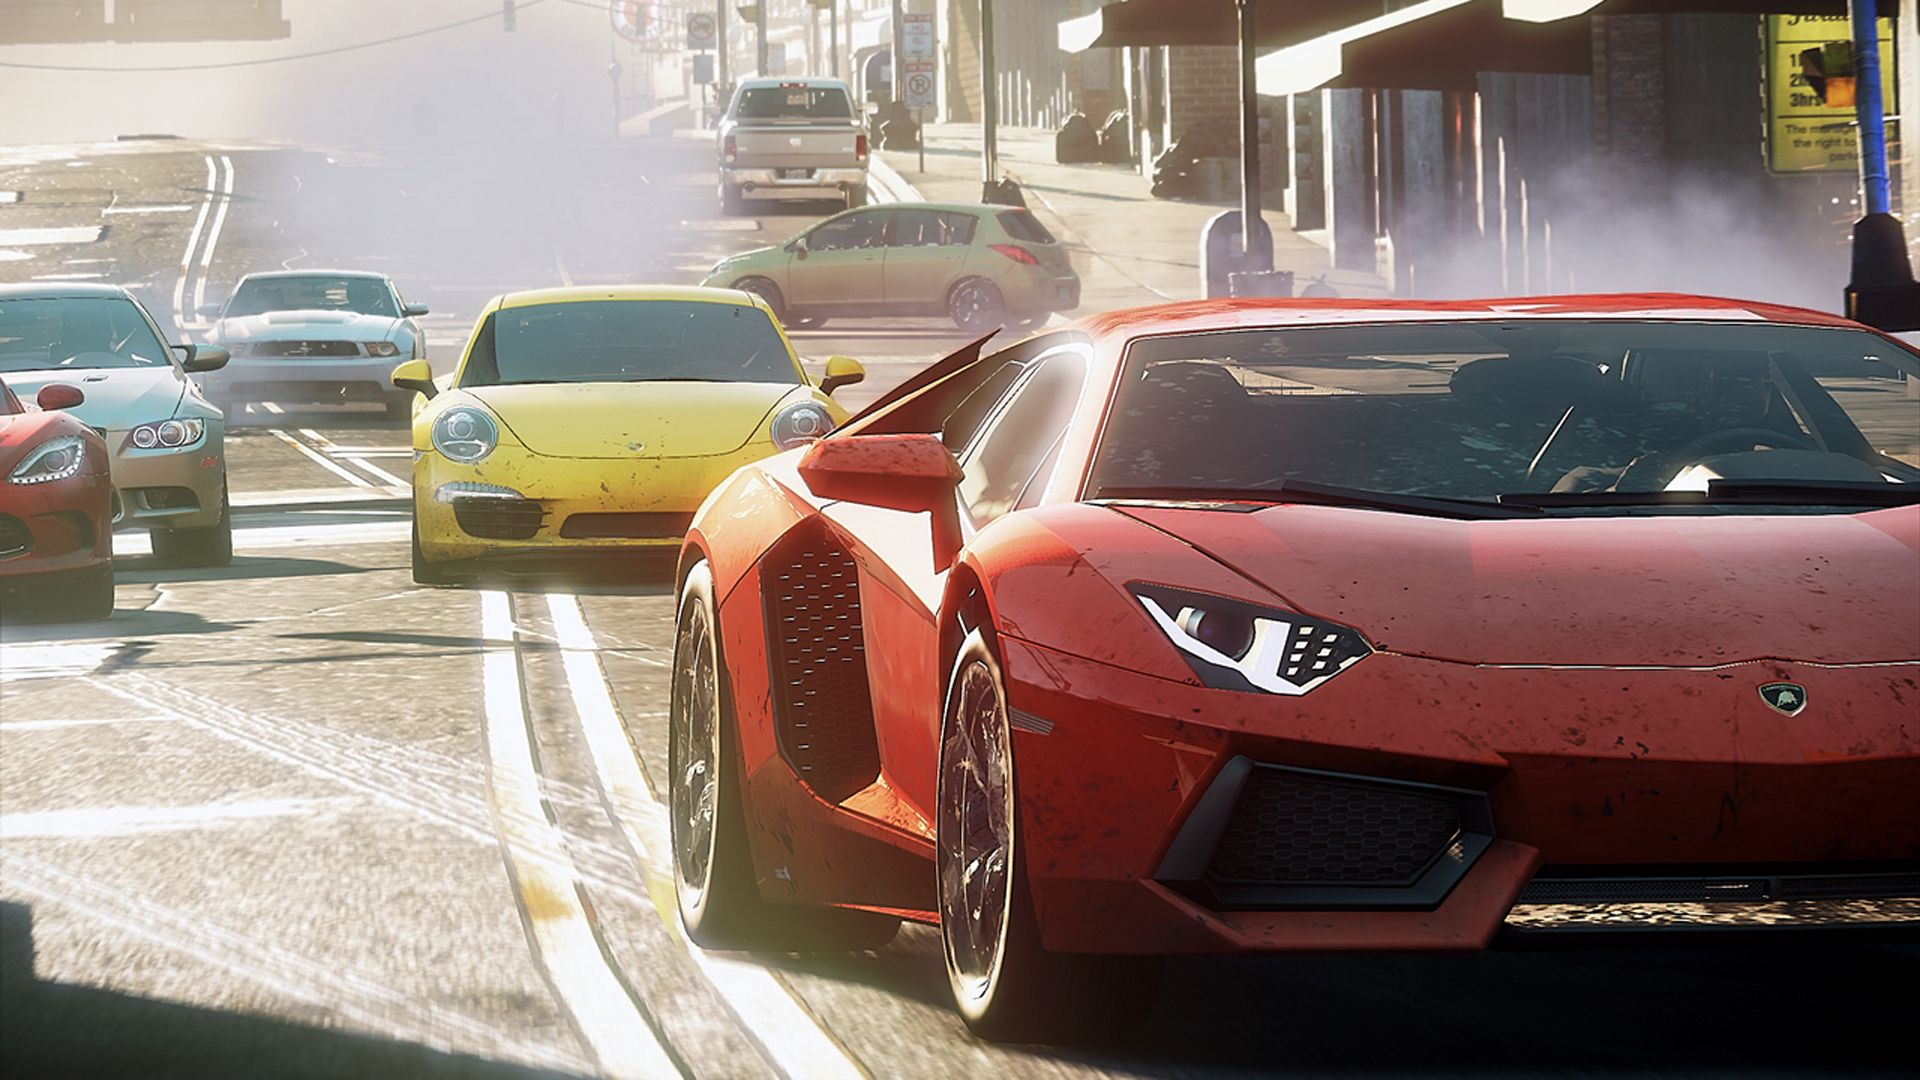 Descárgate 'Need For Speed: Most Wanted' totalmente gratis